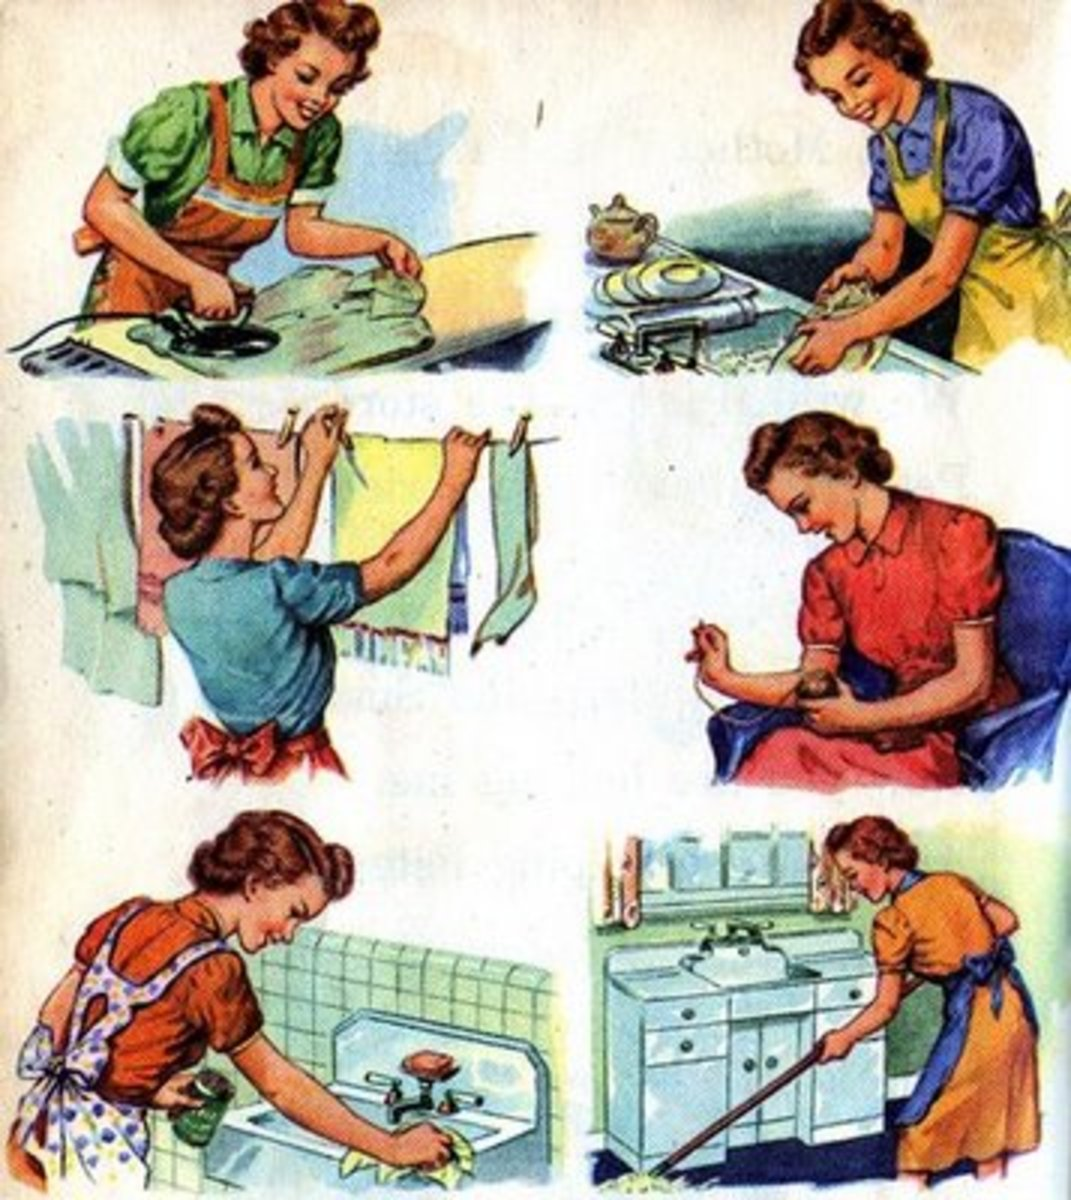 Housewife – What do housewives do?